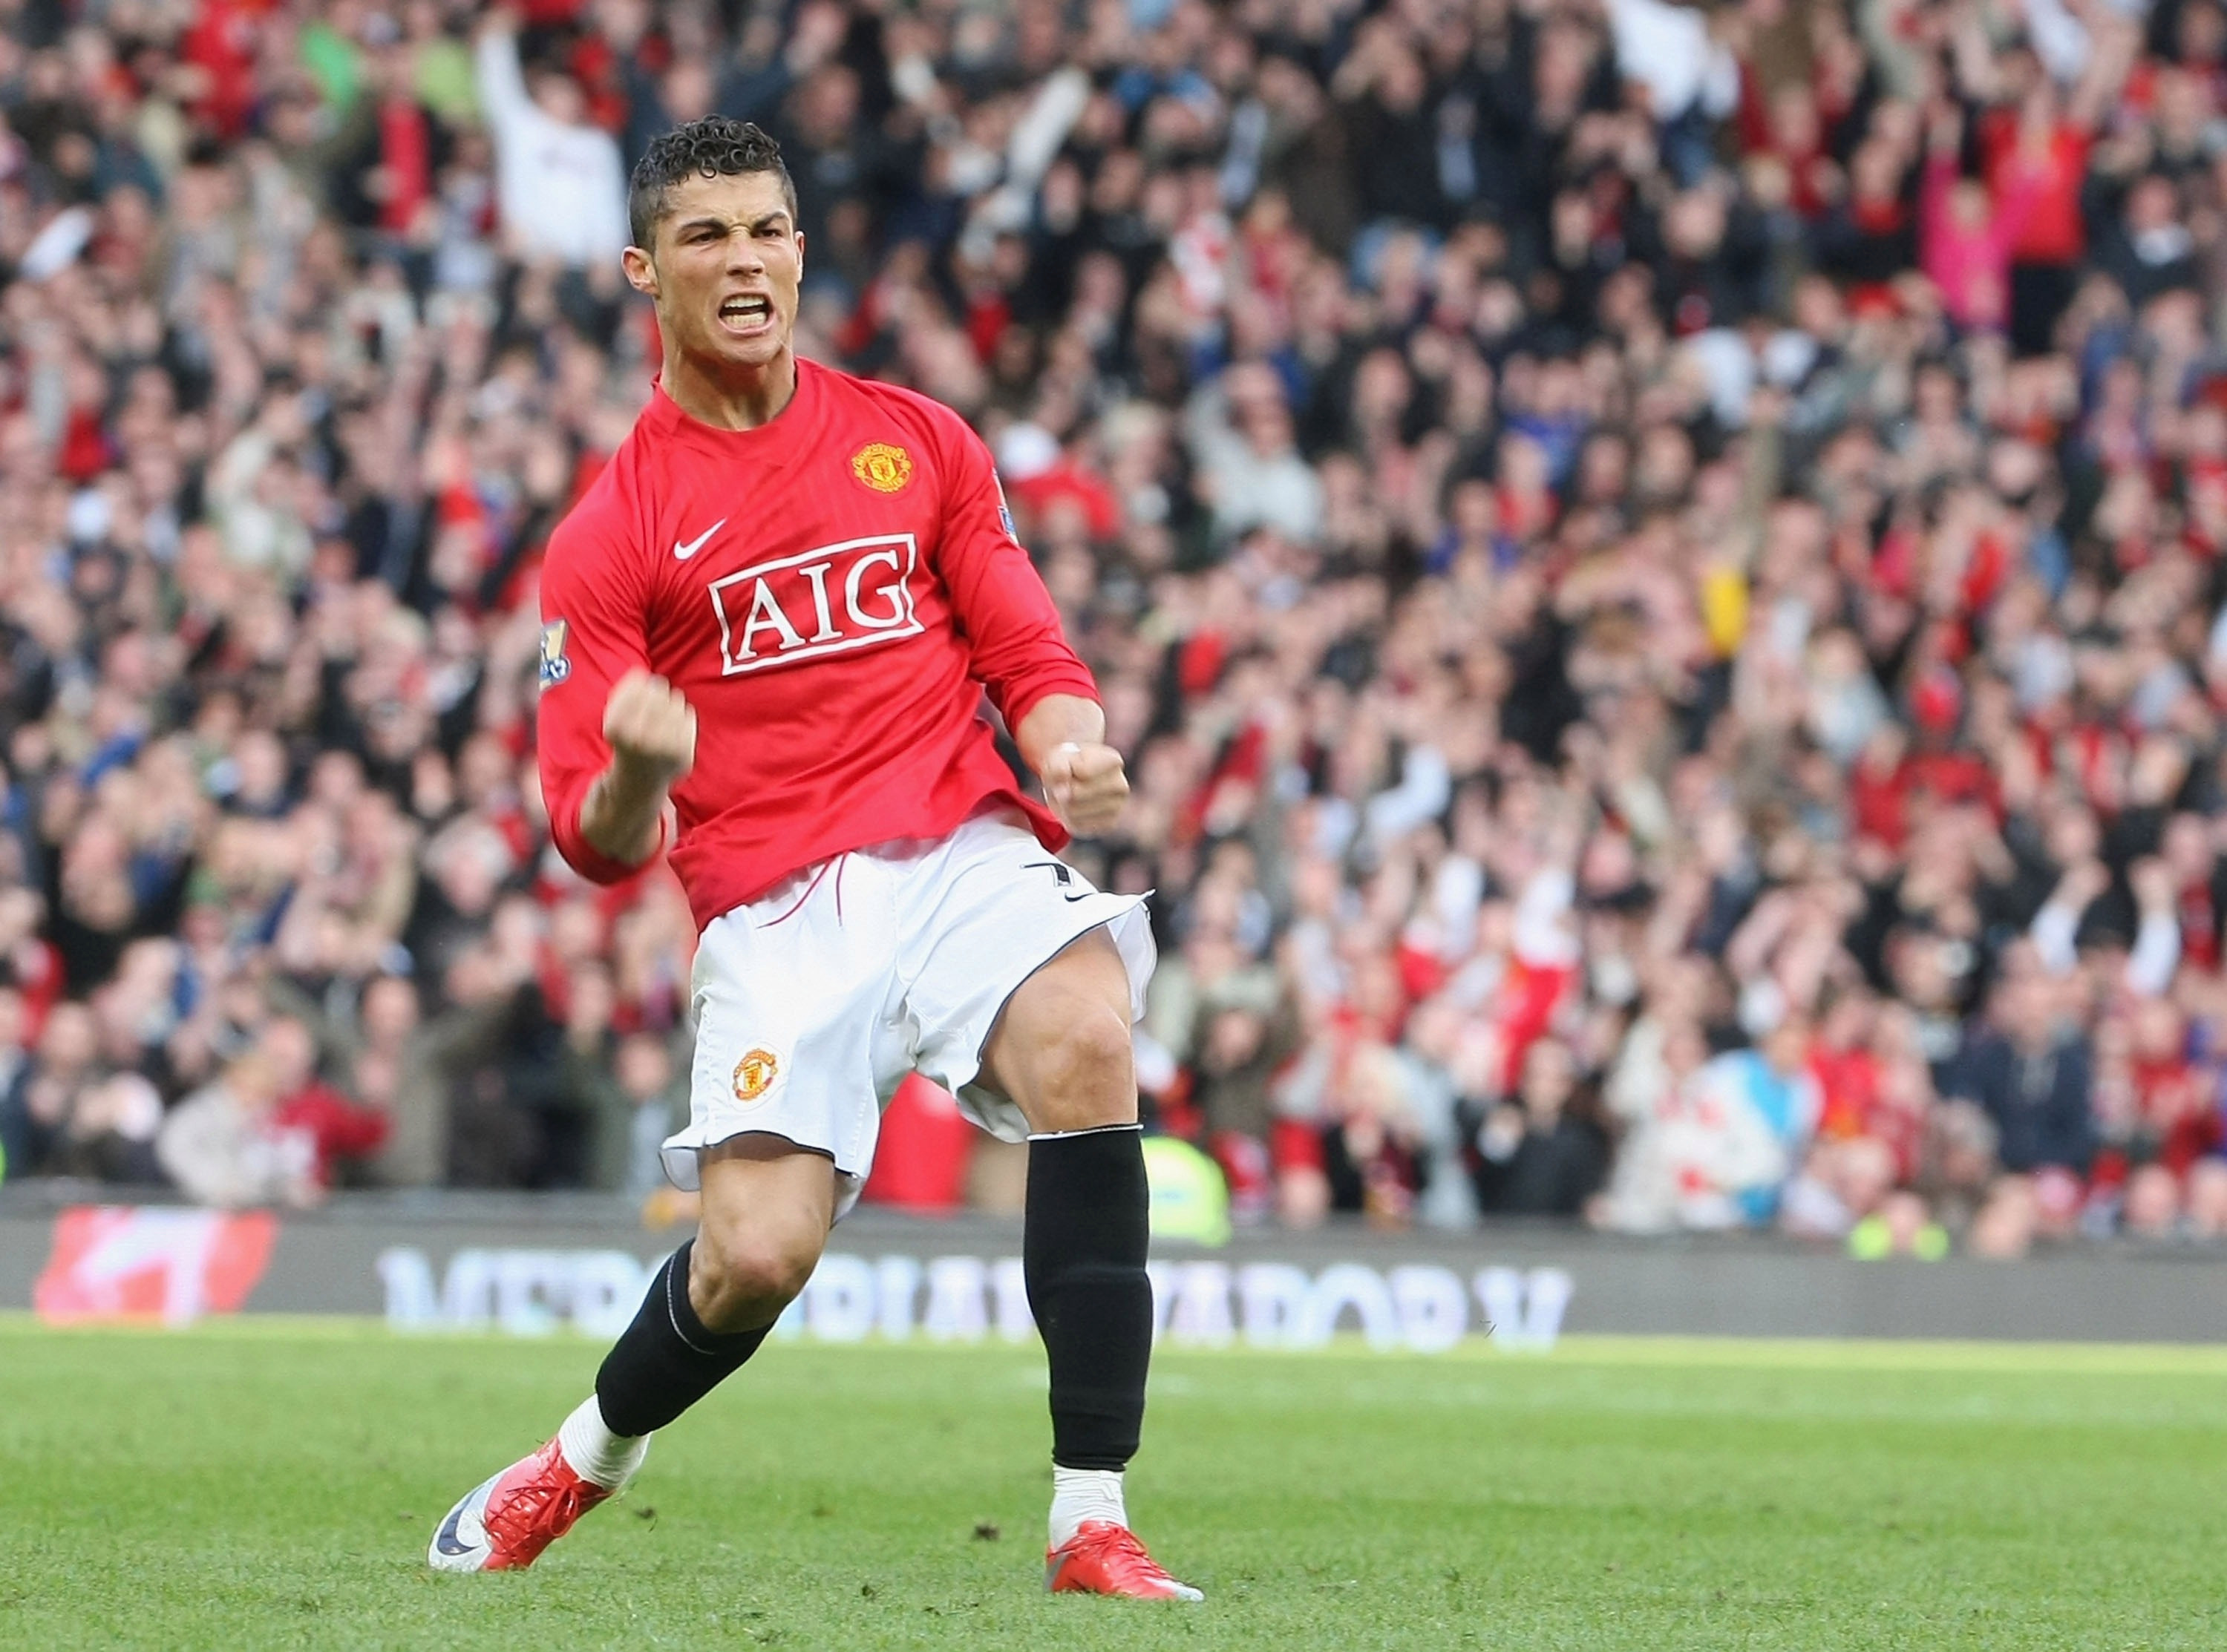 Fans will be hoping for more of these scenes at OId Trafford